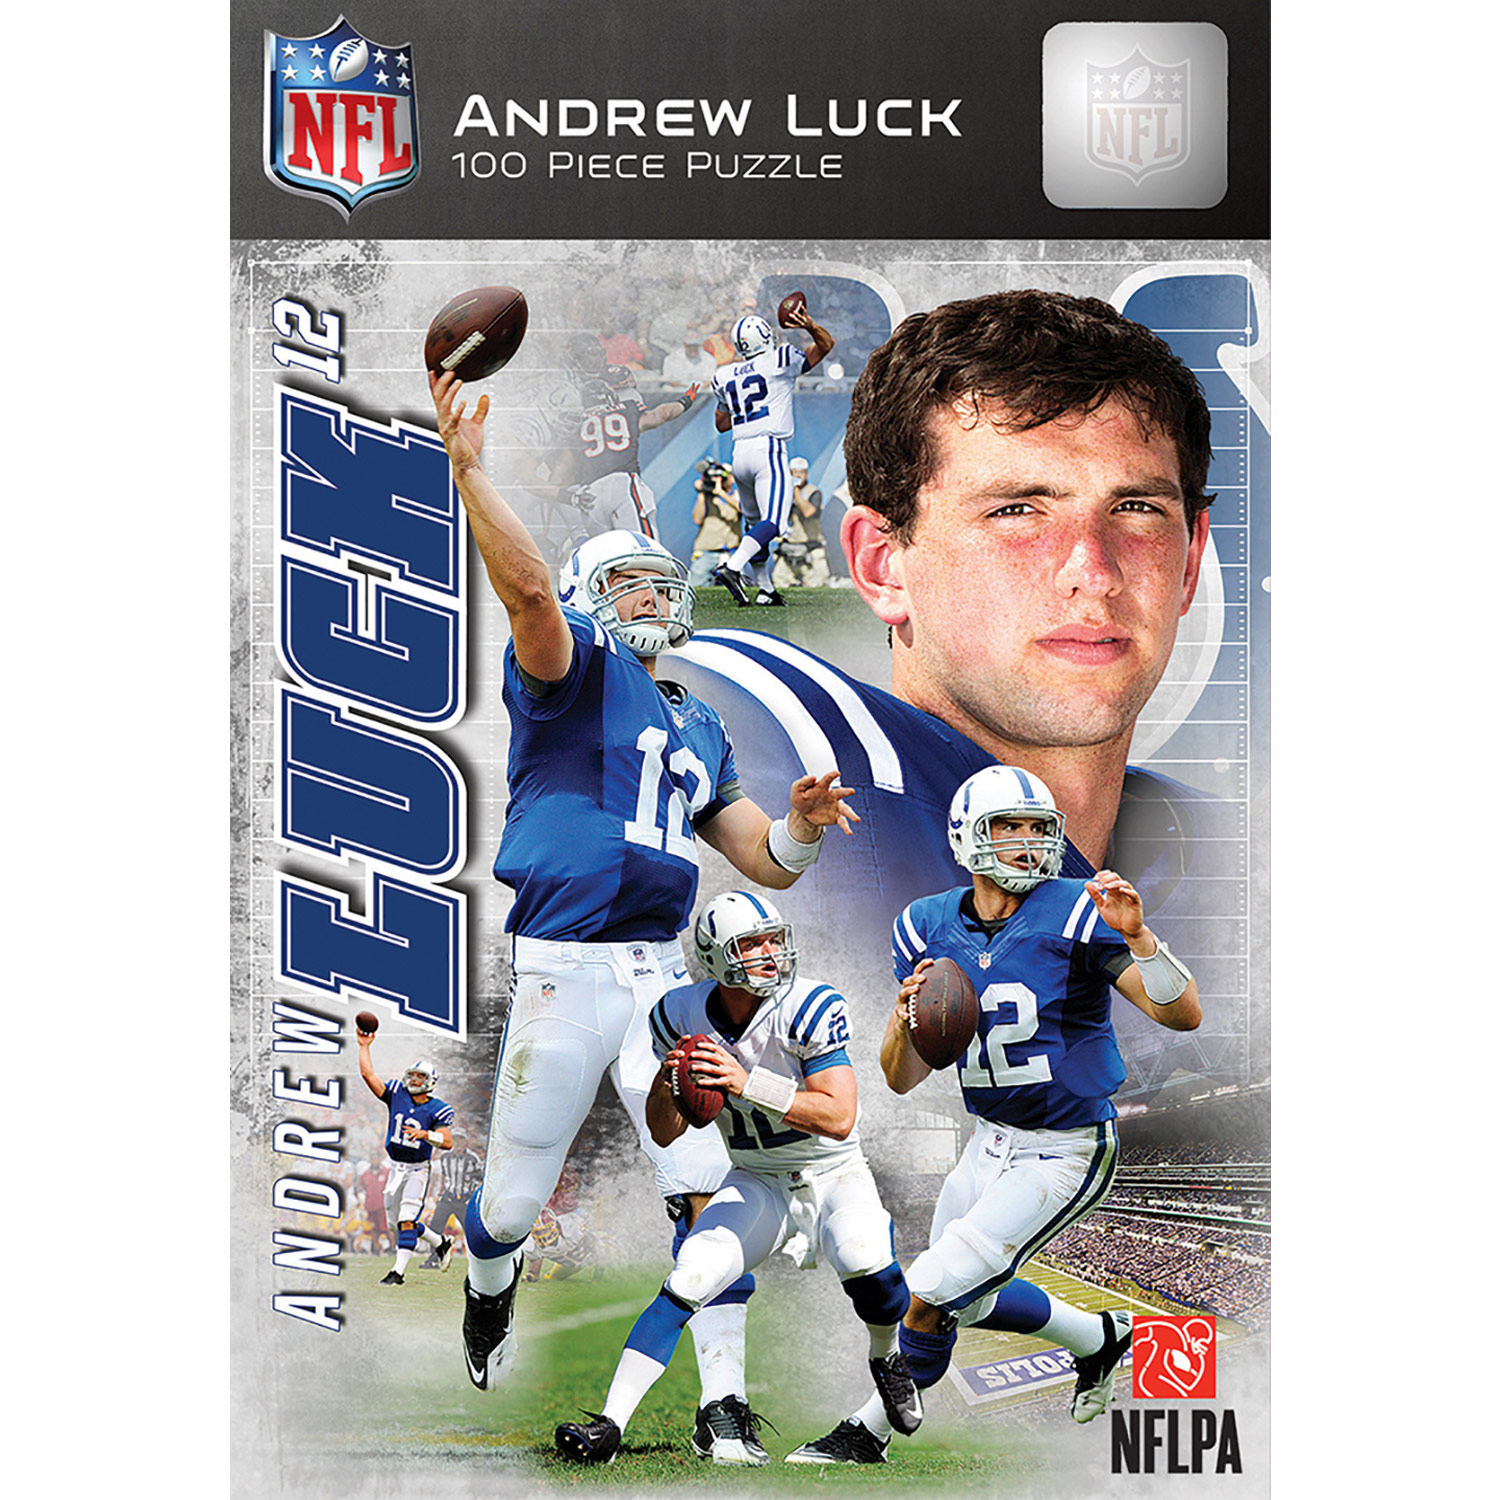 Andrew Luck Indianapolis Colts 100-Piece Player Puzzle - No Size